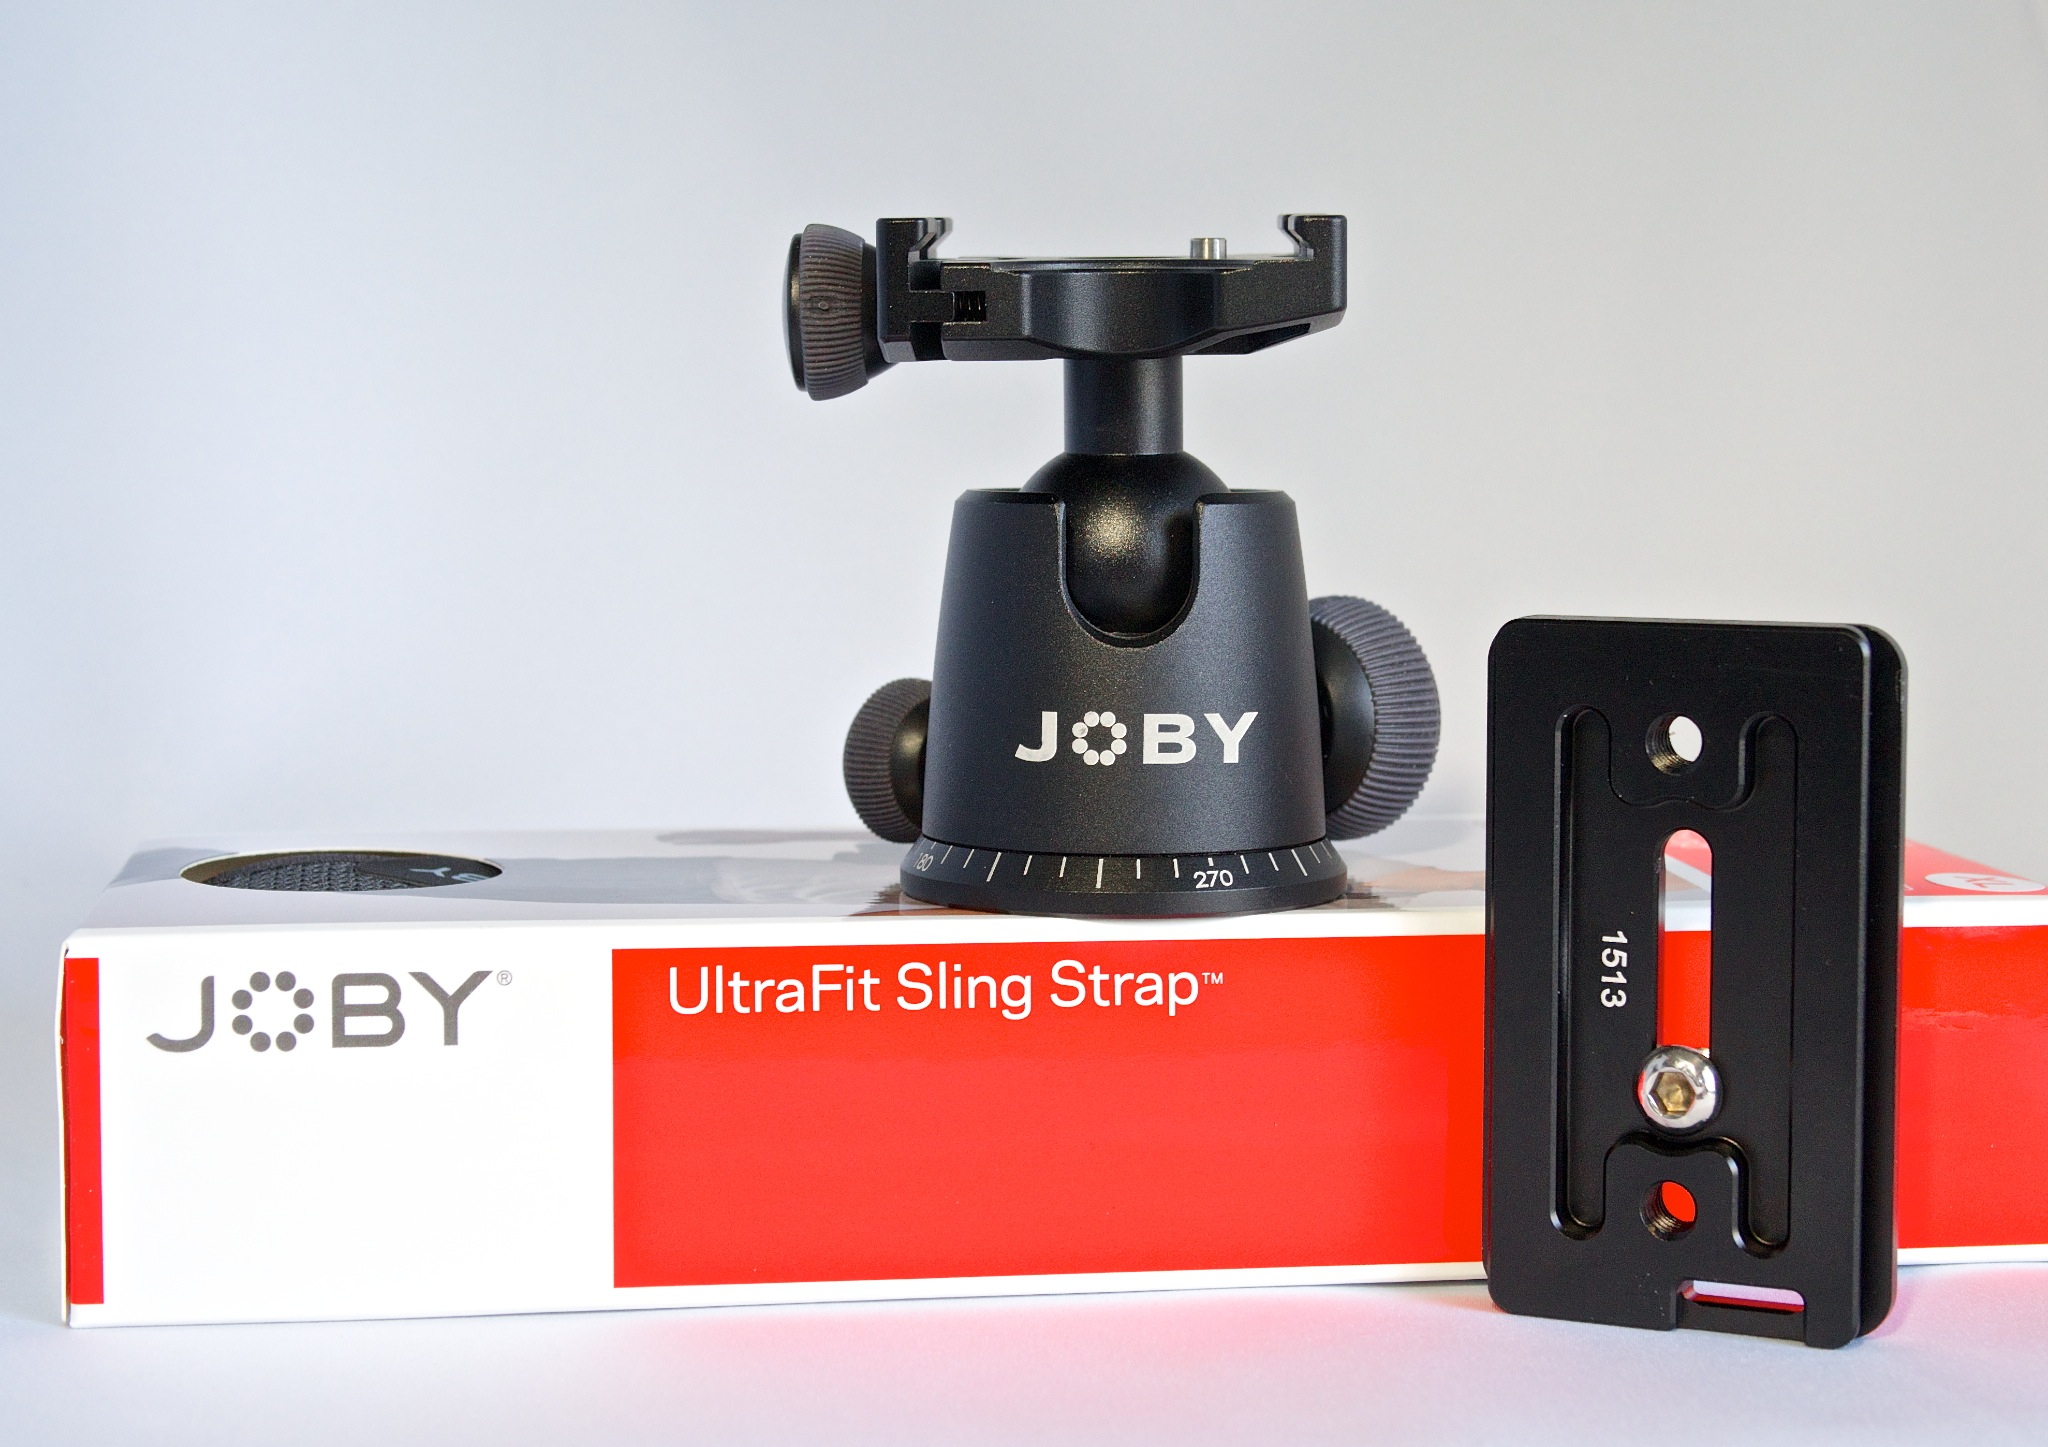 CSCs and Tripods. JOBY UltraPlate Quick Release Arca-Swiss Plate and Accessory Mount for DSLR